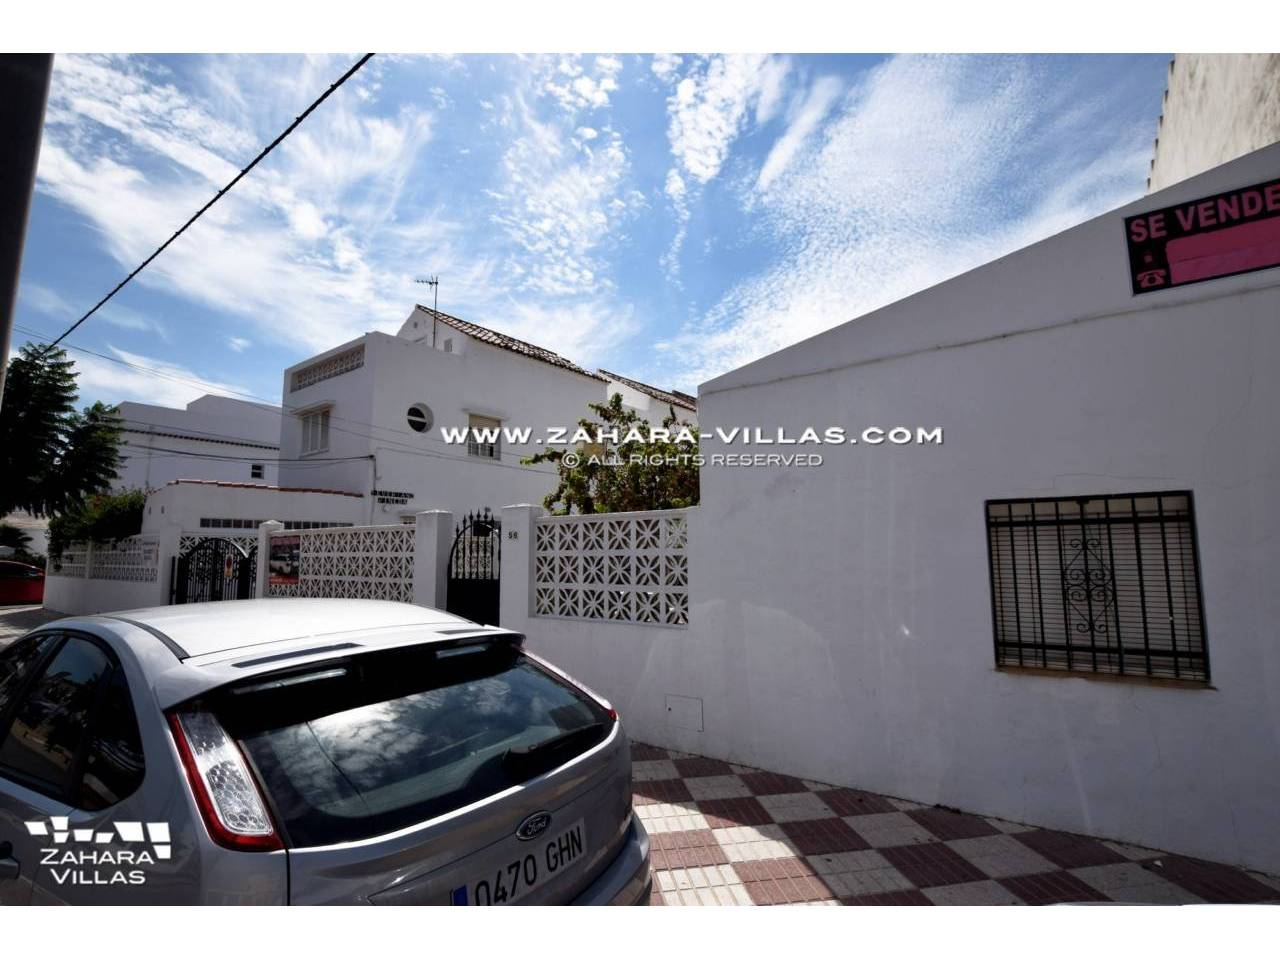 Imagen 18 de House in Avda. Del Pradillo for sale in the town of Zahara de los Atunes